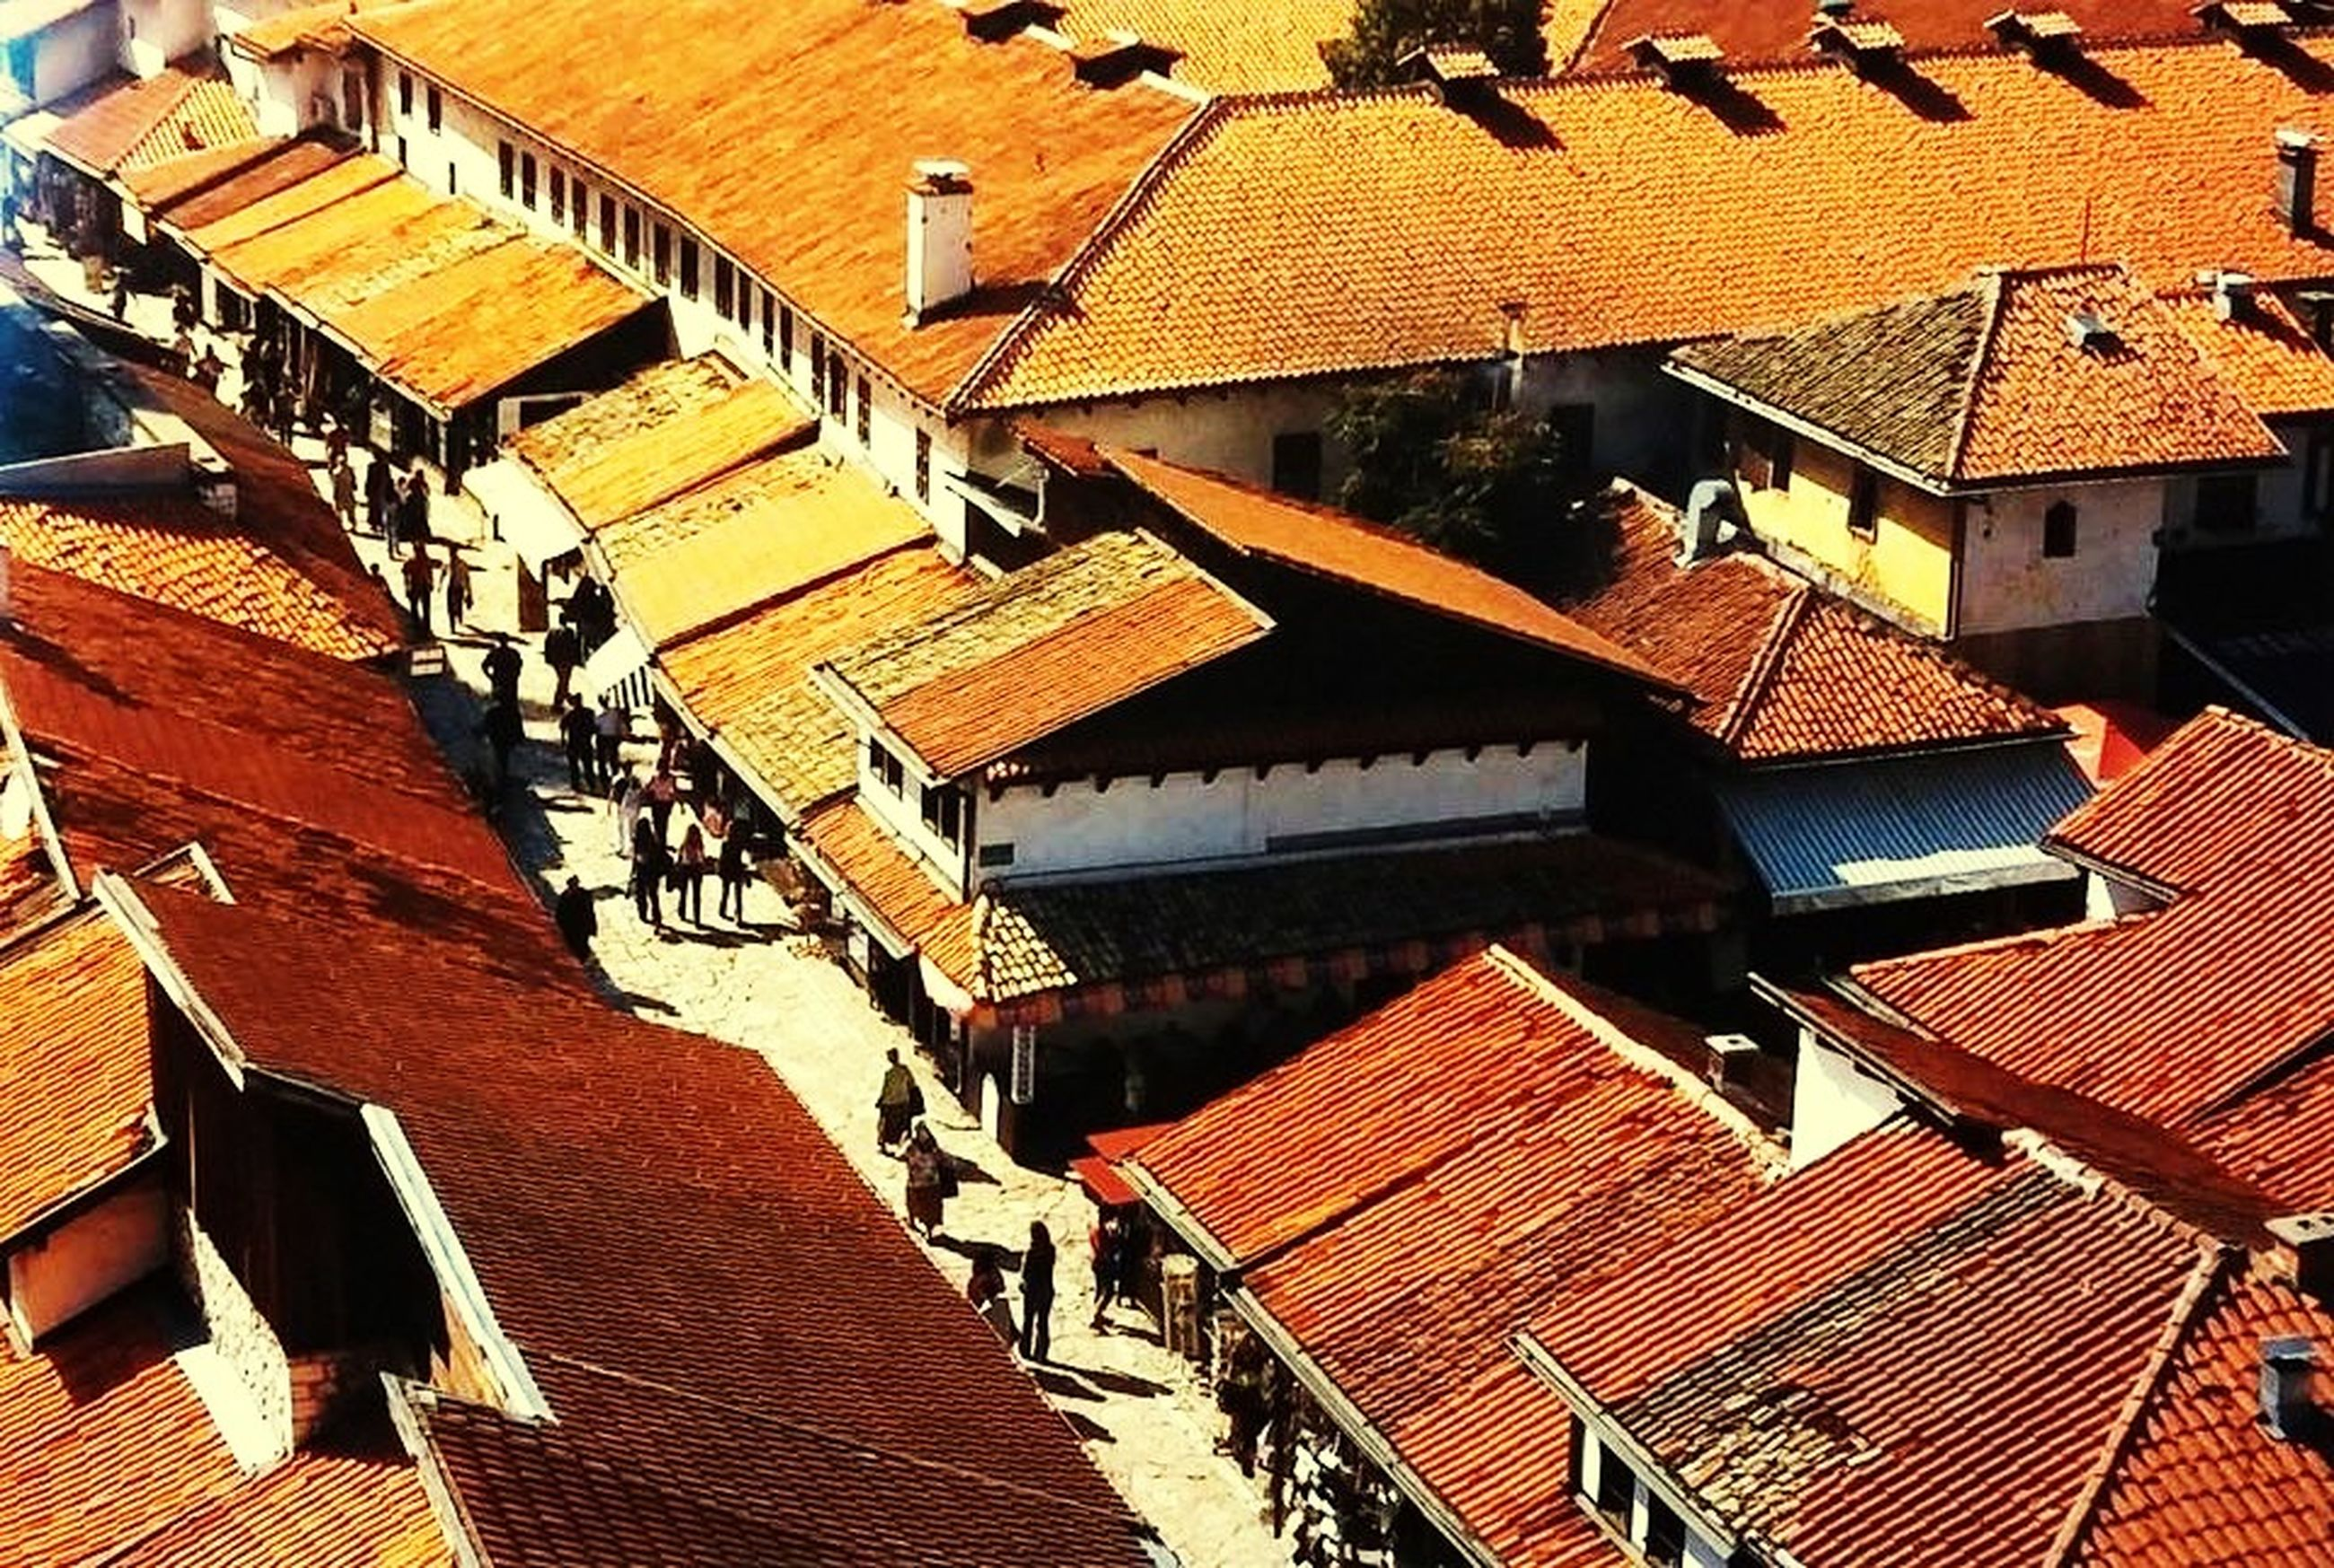 roof, building exterior, built structure, architecture, roof tile, high angle view, house, residential structure, abundance, residential building, large group of objects, outdoors, sunlight, day, in a row, repetition, rooftop, no people, town, residential district